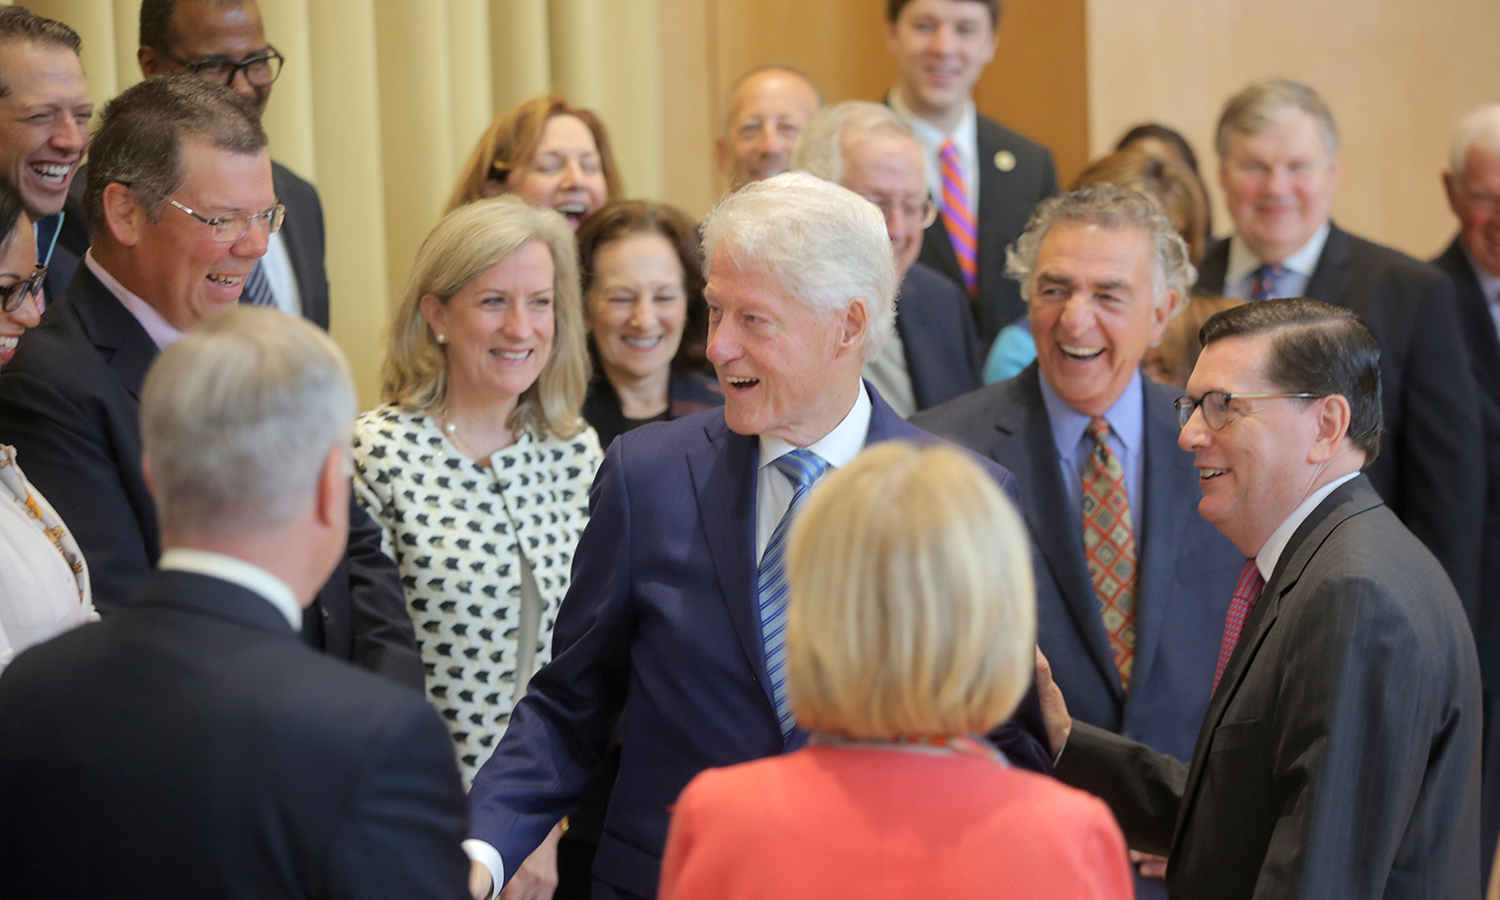 President Bill Clinton greets members of the HWS Board of Trustees in Froelich Hall of the Gearan Center for the Performing Arts before Sunday's Commencement ceremony.